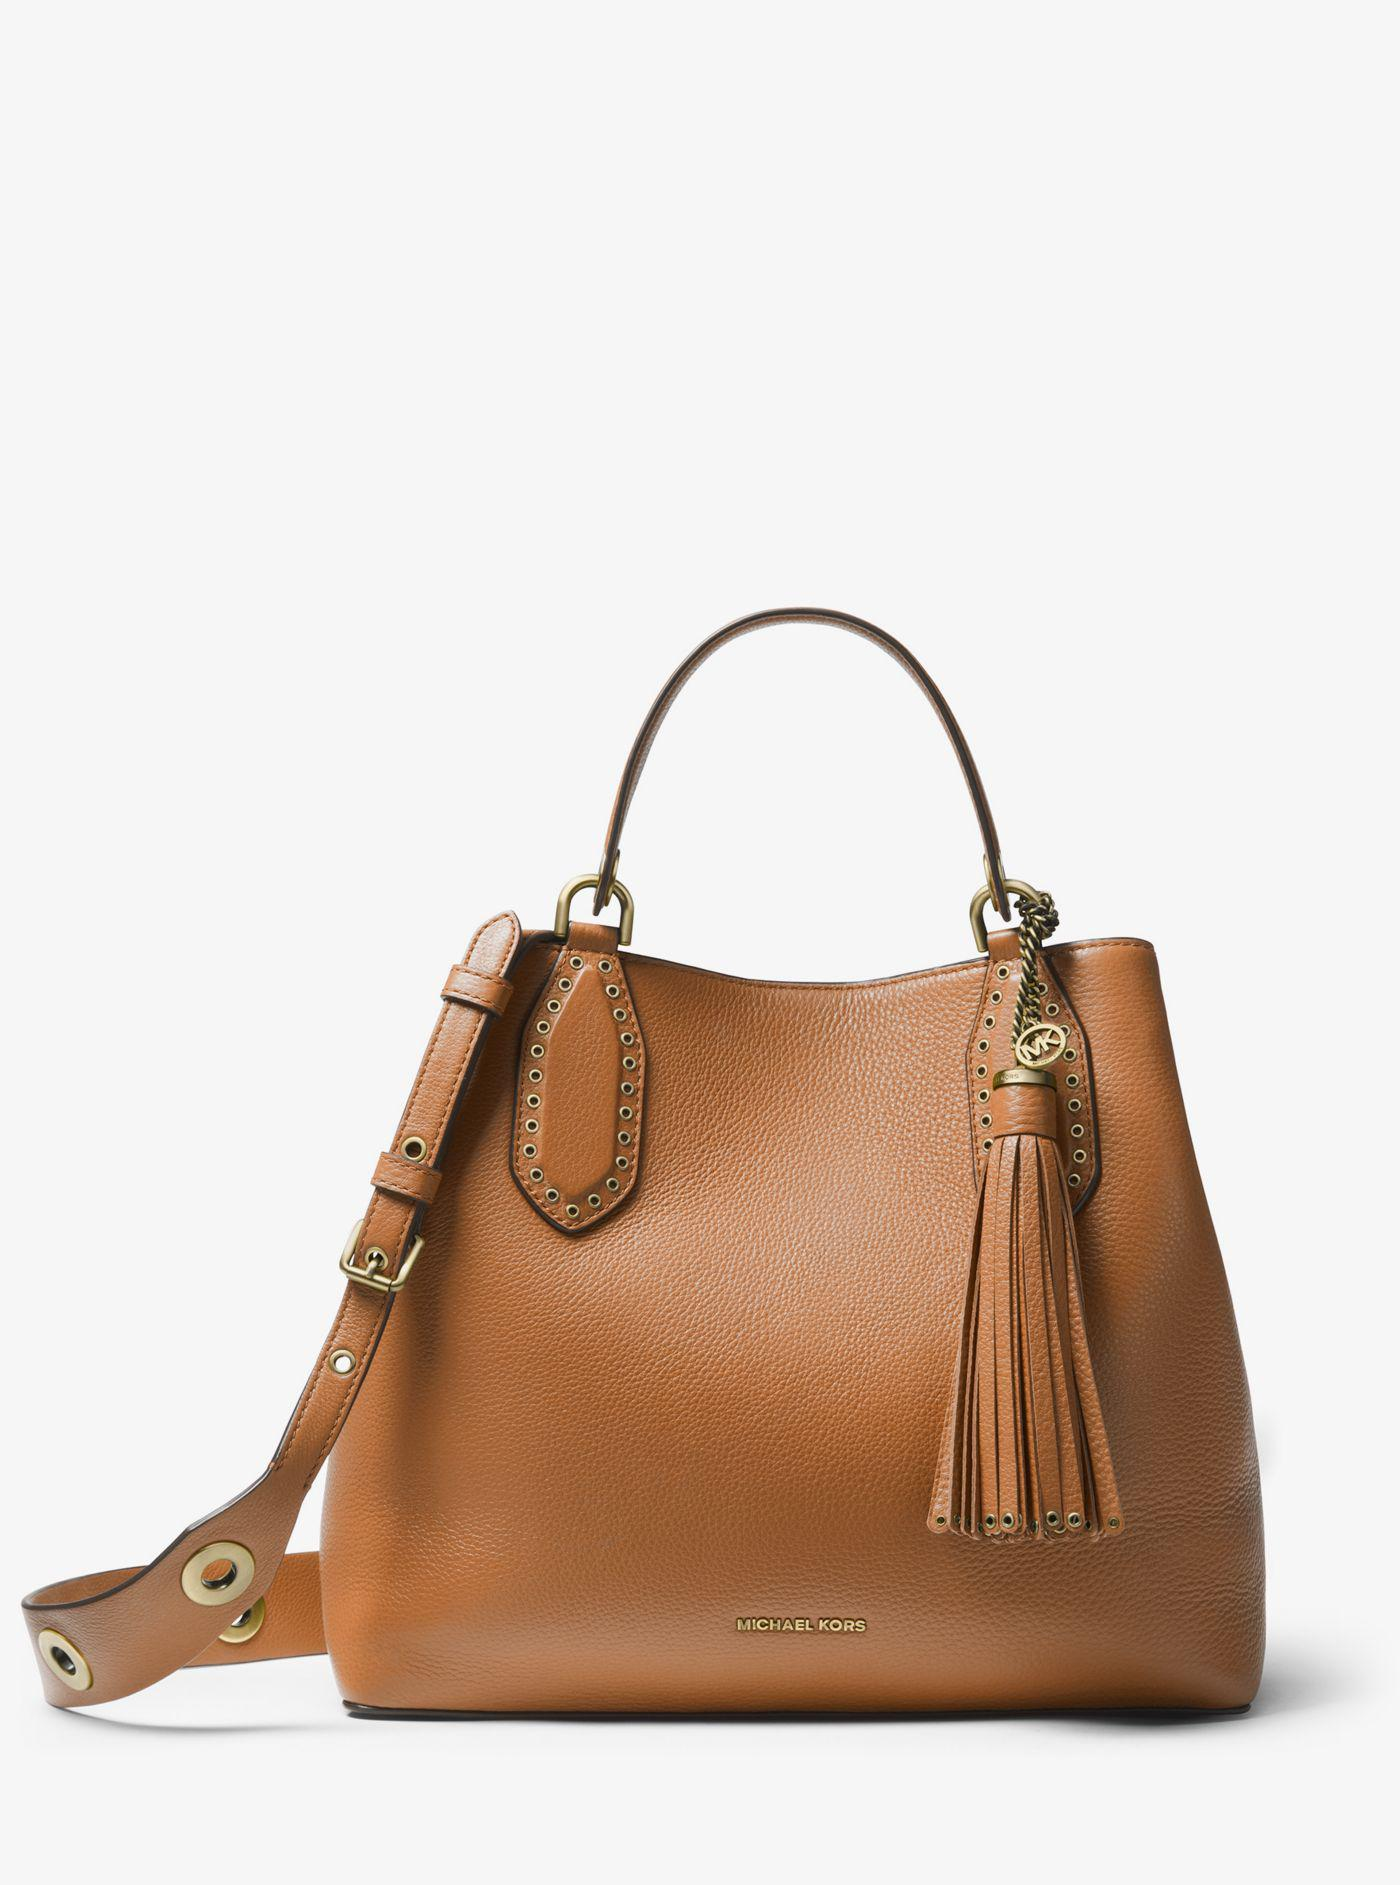 4f20cfb4d6e47 Lyst - Michael Kors Brooklyn Large Pebbled Leather Satchel in Brown